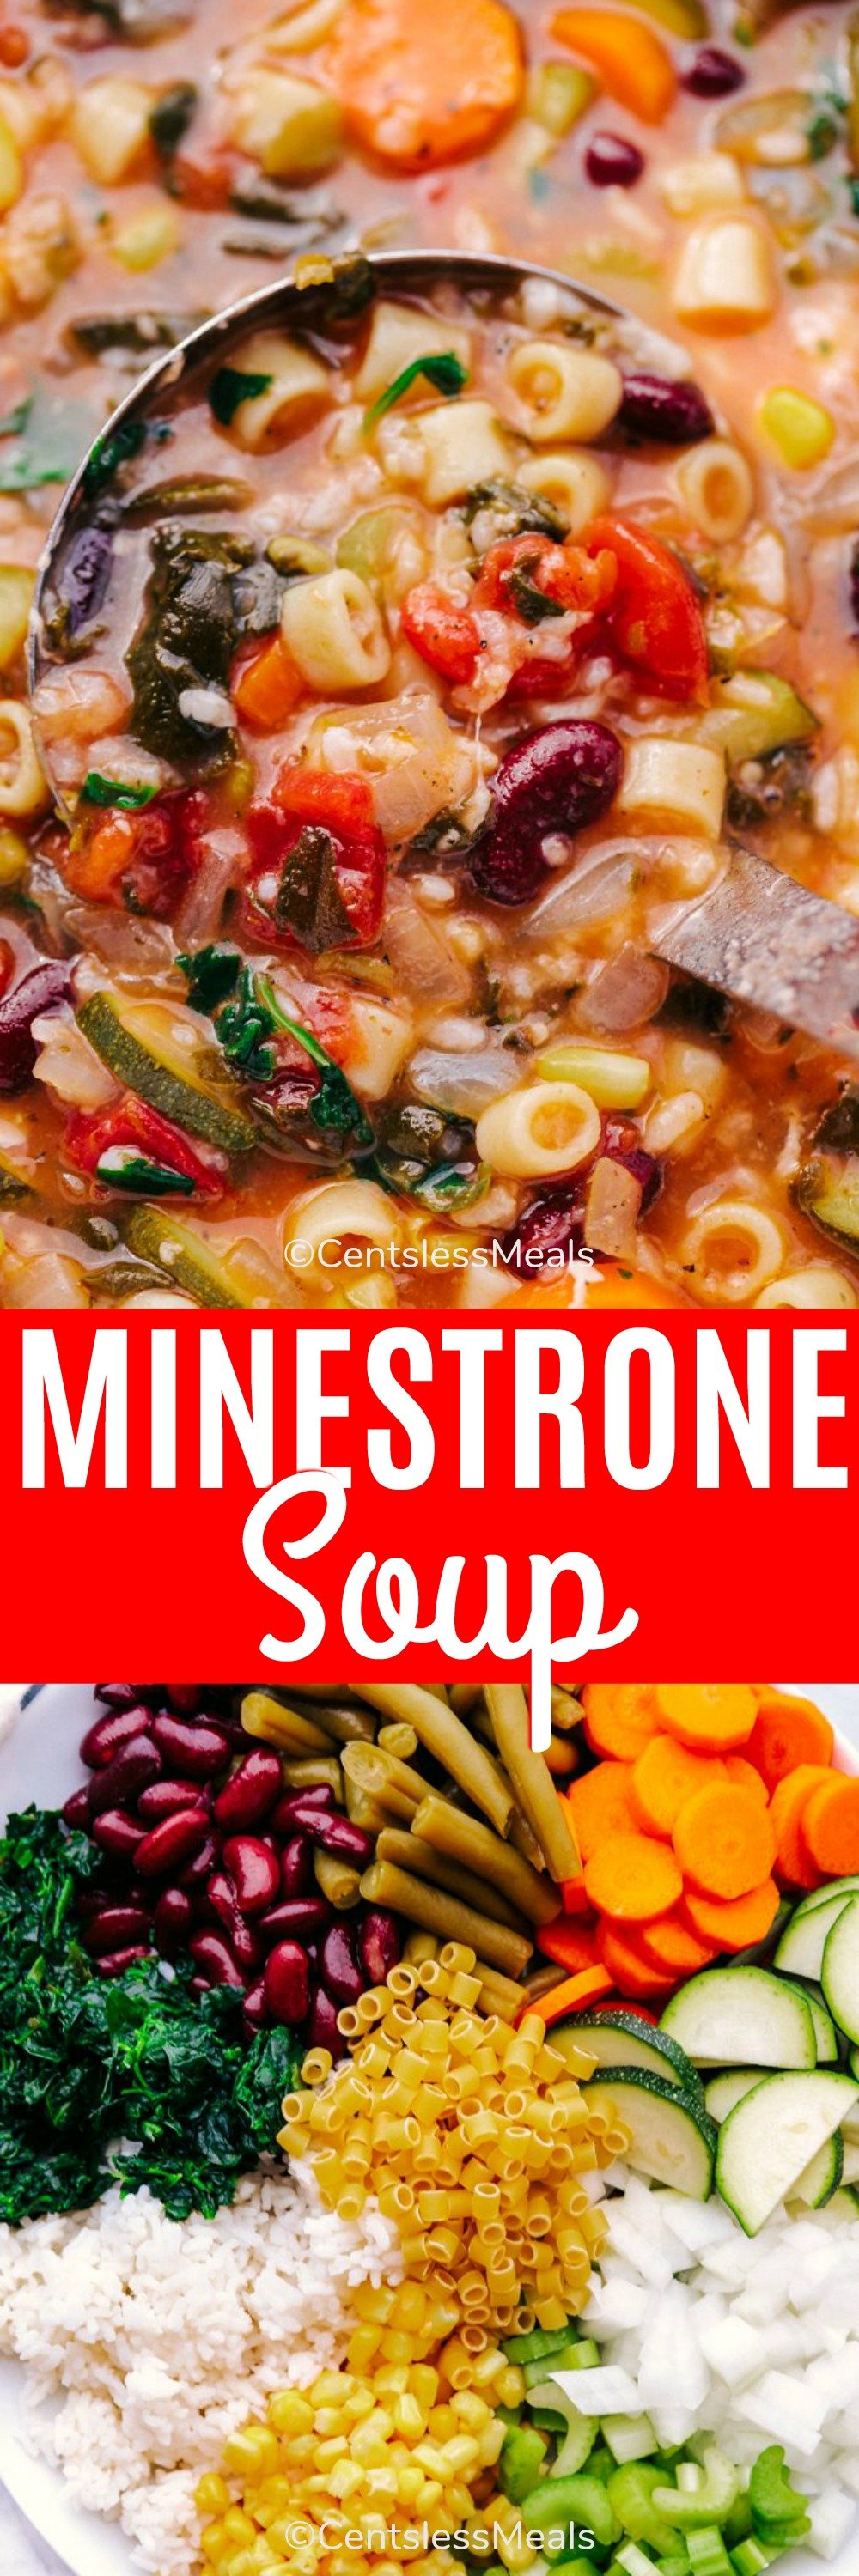 Homemade Minestrone Soup is the ultimate combination of hearty vegetables, white rice, beans, and pasta topped off with freshly grated parmesan cheese made in one pot and in just 30 minutes. #centslessmeals #minestronesoup #onepotmeal #souprecipe #familyfriendly #veganfriendly #homemadesoup #easyrecipe